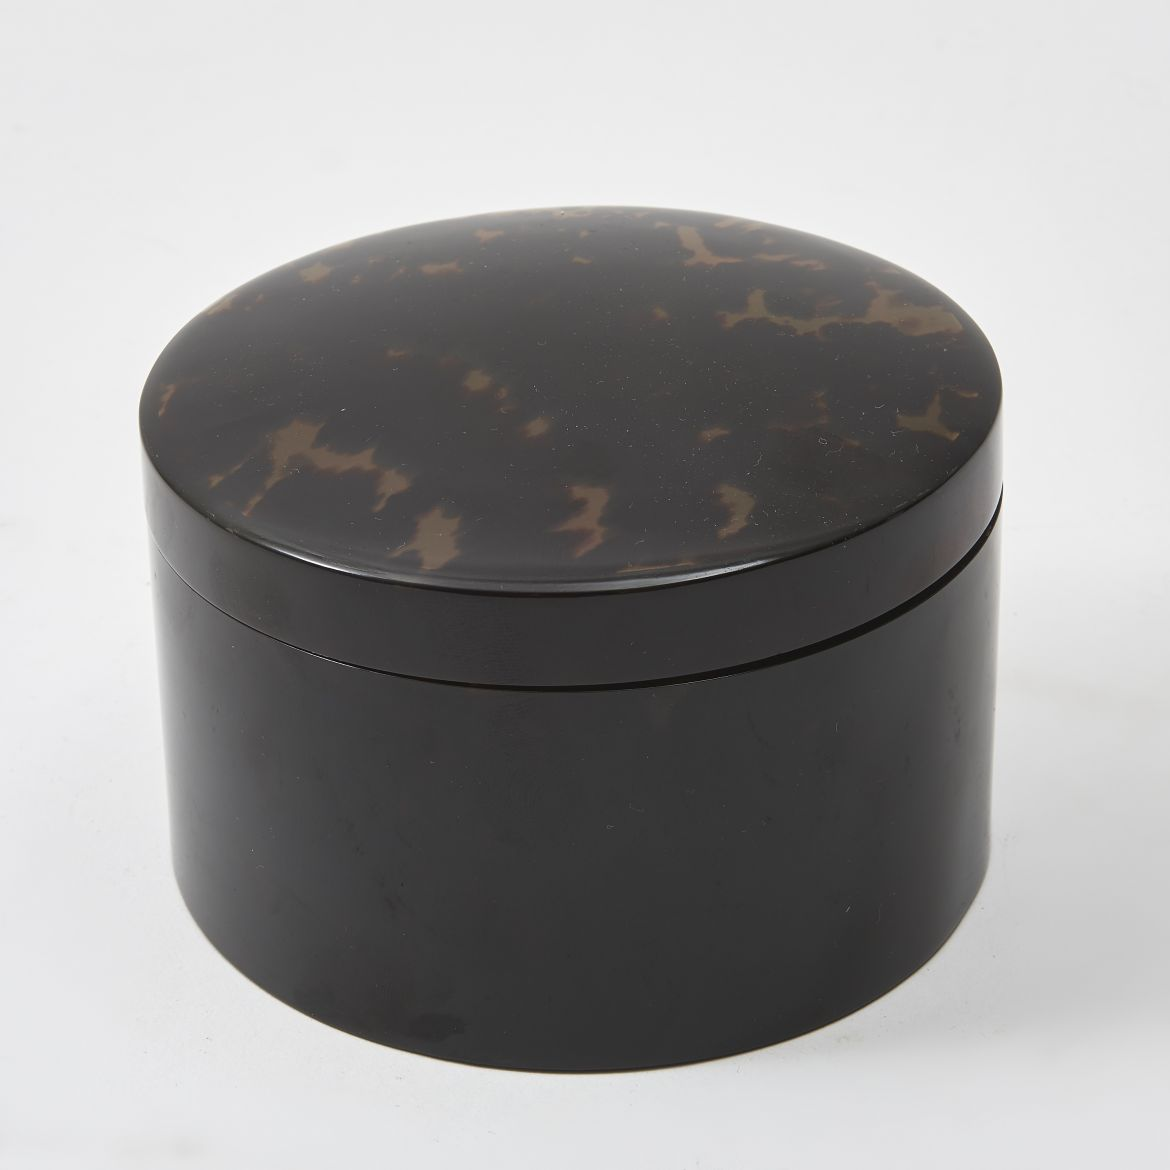 English Tortoiseshell Powder Pot